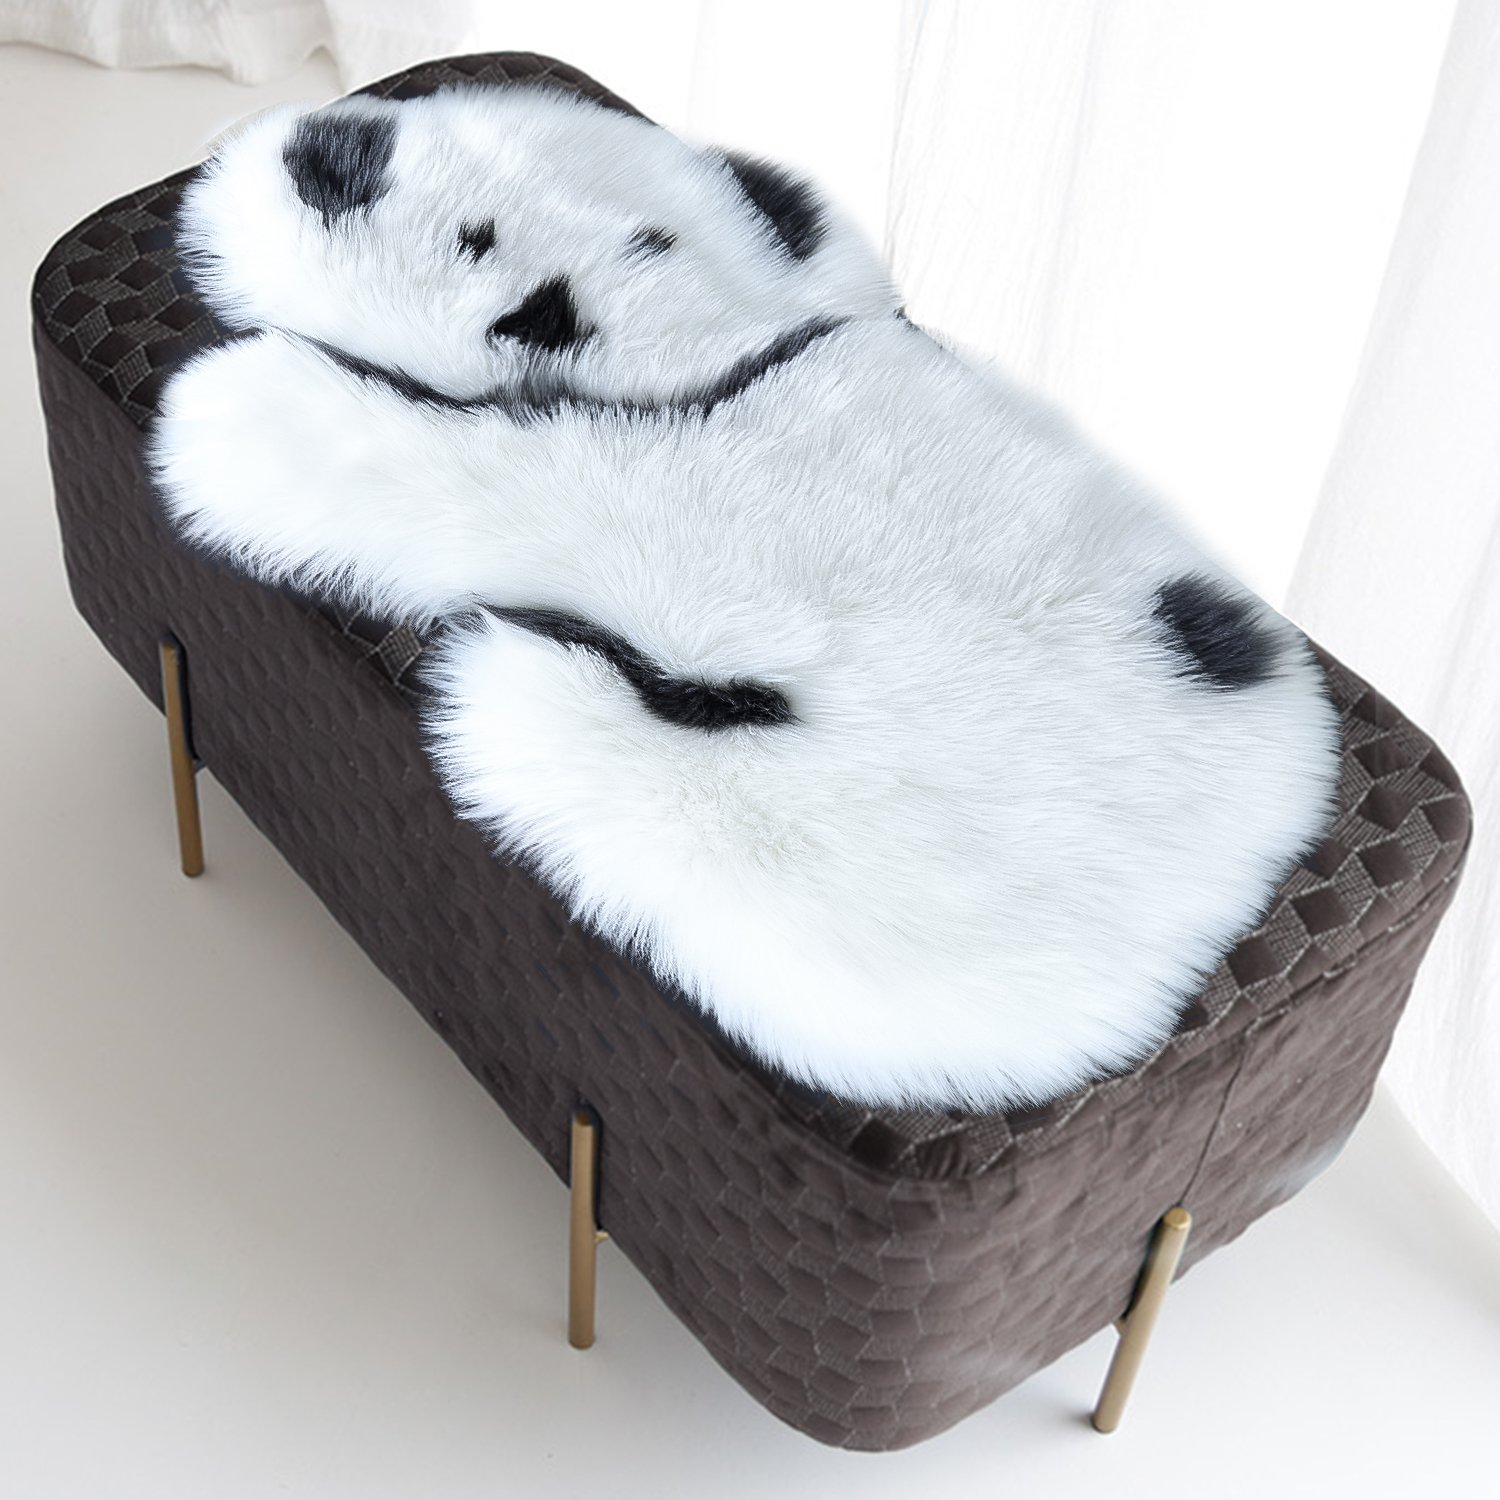 Noahas Faux Fur Sheepskin Silky Seat Cushion, Home Decor Long Wool Area Rugs Carpet, Soft Fluffy Plush Chair Seat Pads Universal Fit for Home Office Restaurant Chair (2x3 Feet, Style-5)